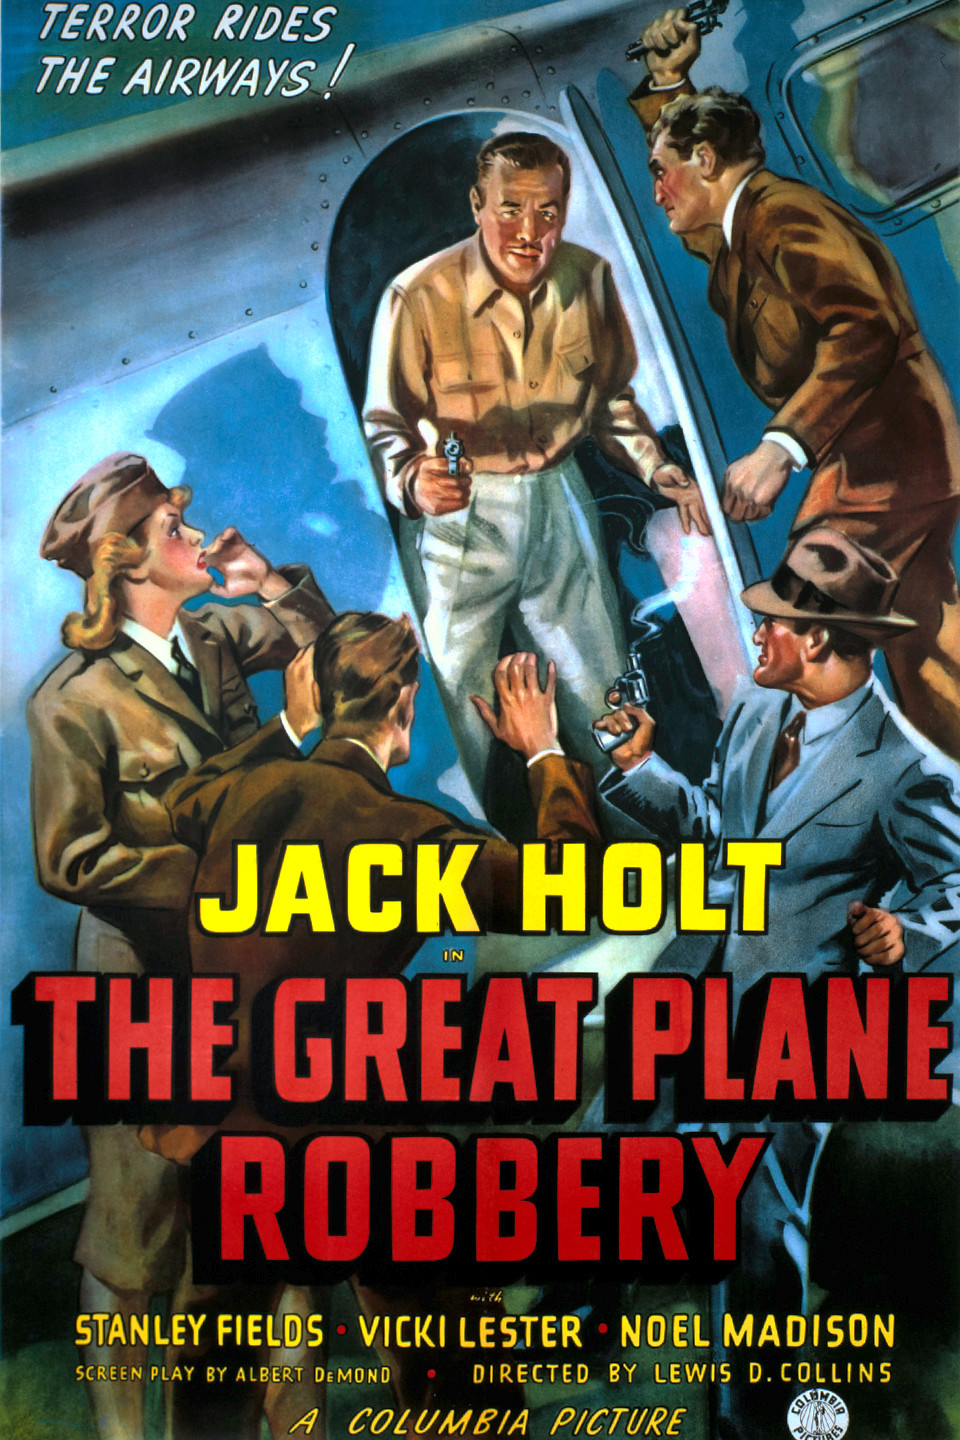 The Great Plane Robbery (1940 film) wwwgstaticcomtvthumbmovieposters8719080p871